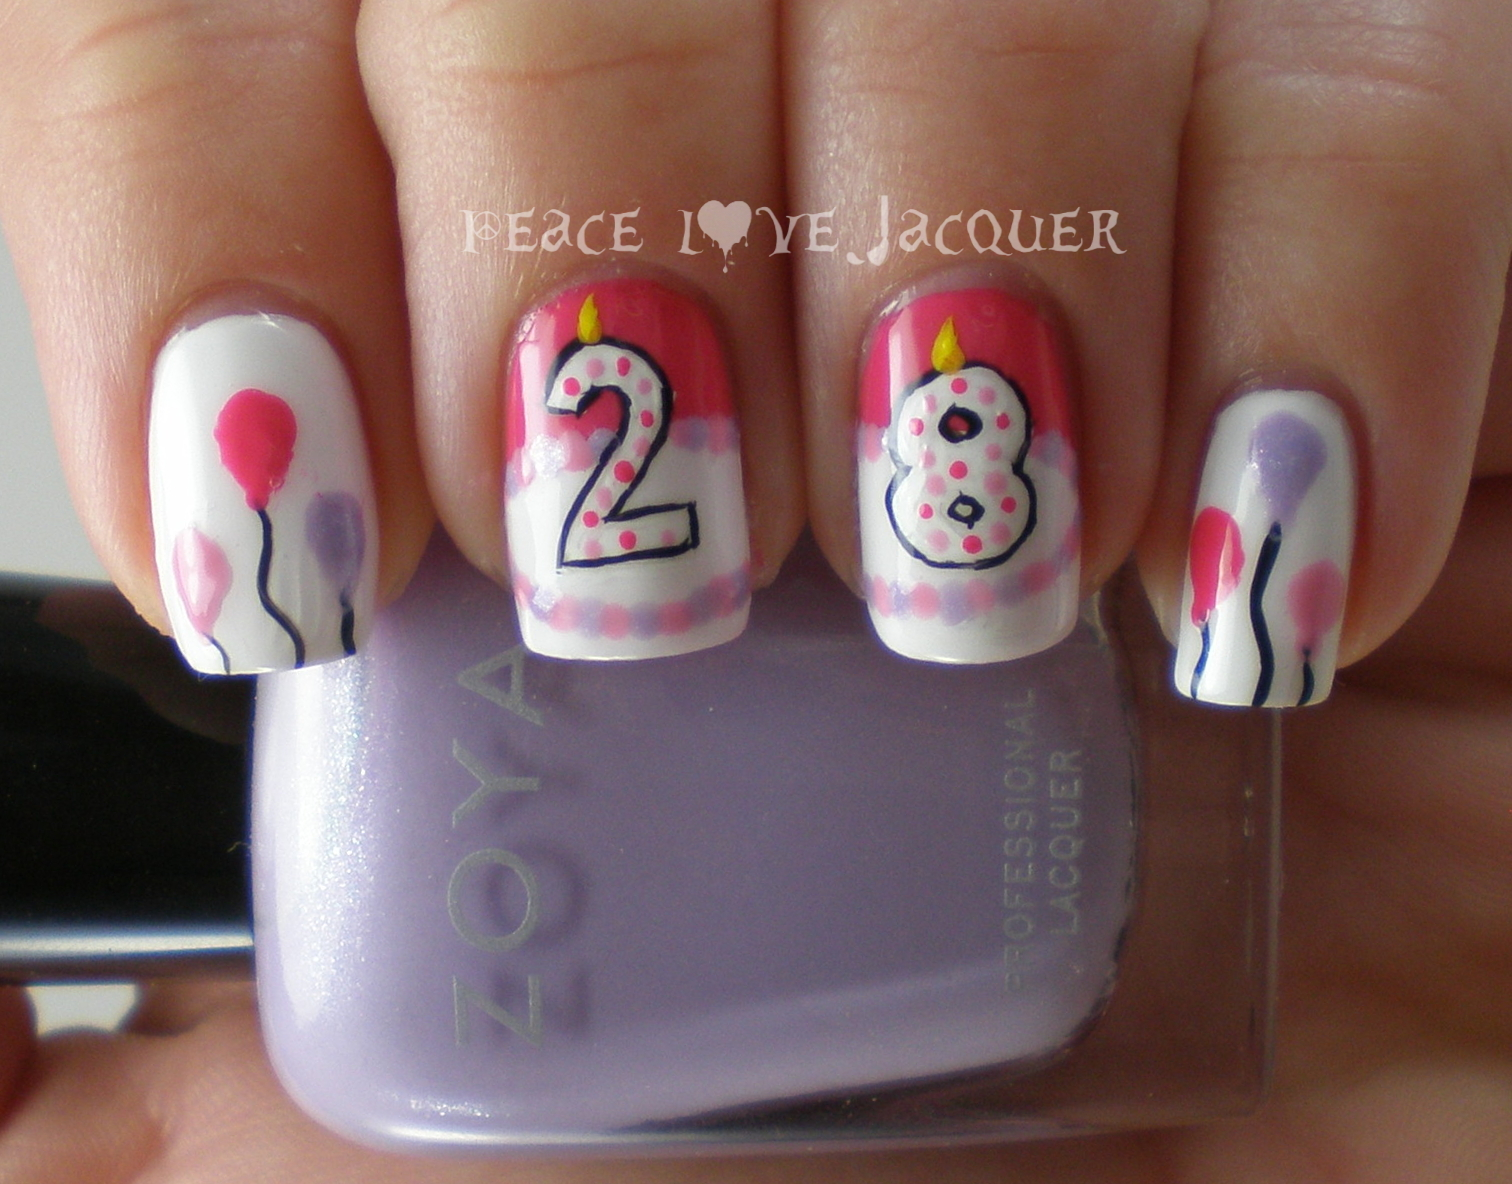 Peace Love Lacquer: Happy Birthday to Me! Nail Art & Flash Giveaway